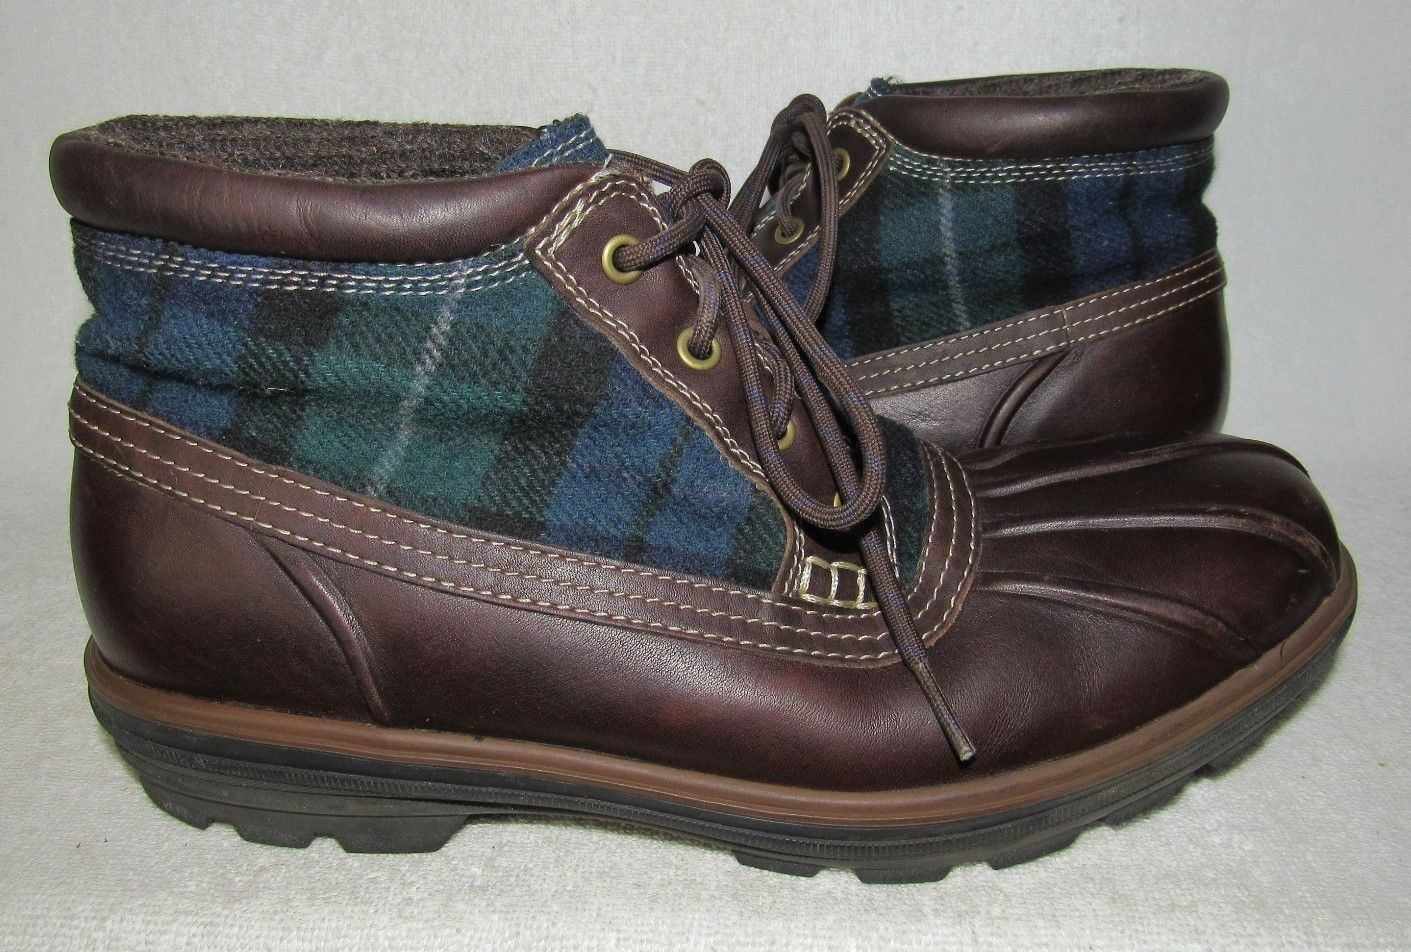 fc65e54188dc Cole Haan Air Scout Scout Scout waterproof duck hunting boots shoes men s  size 11 M a92186